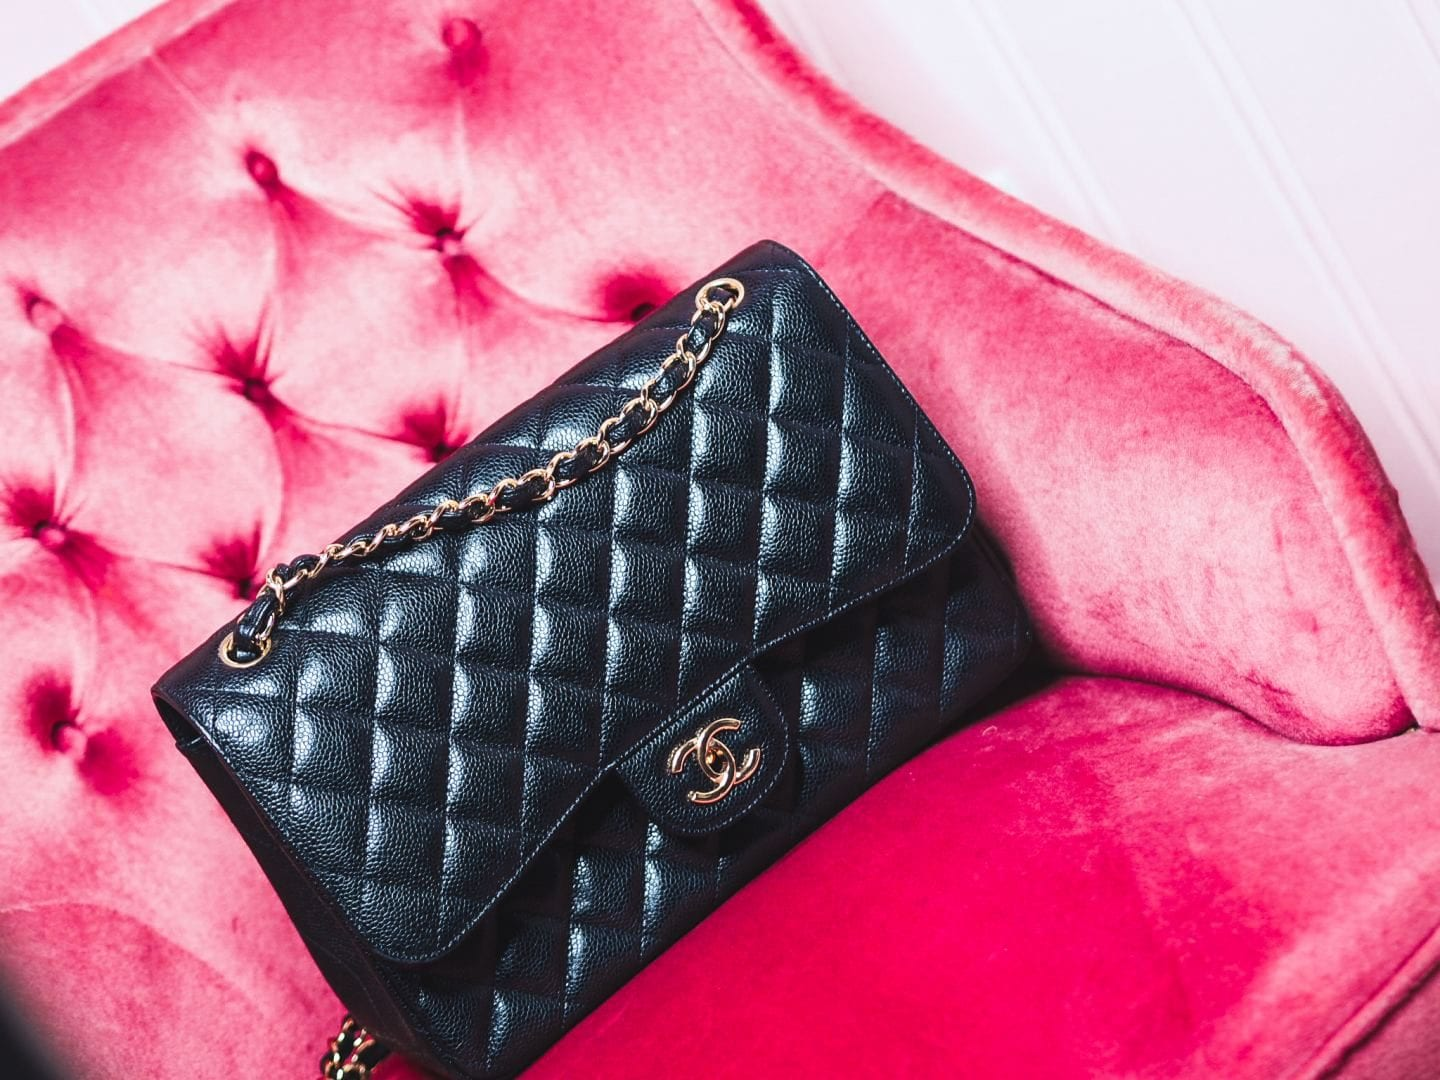 Shopping: Can You Buy A Chanel Bag On Sale?